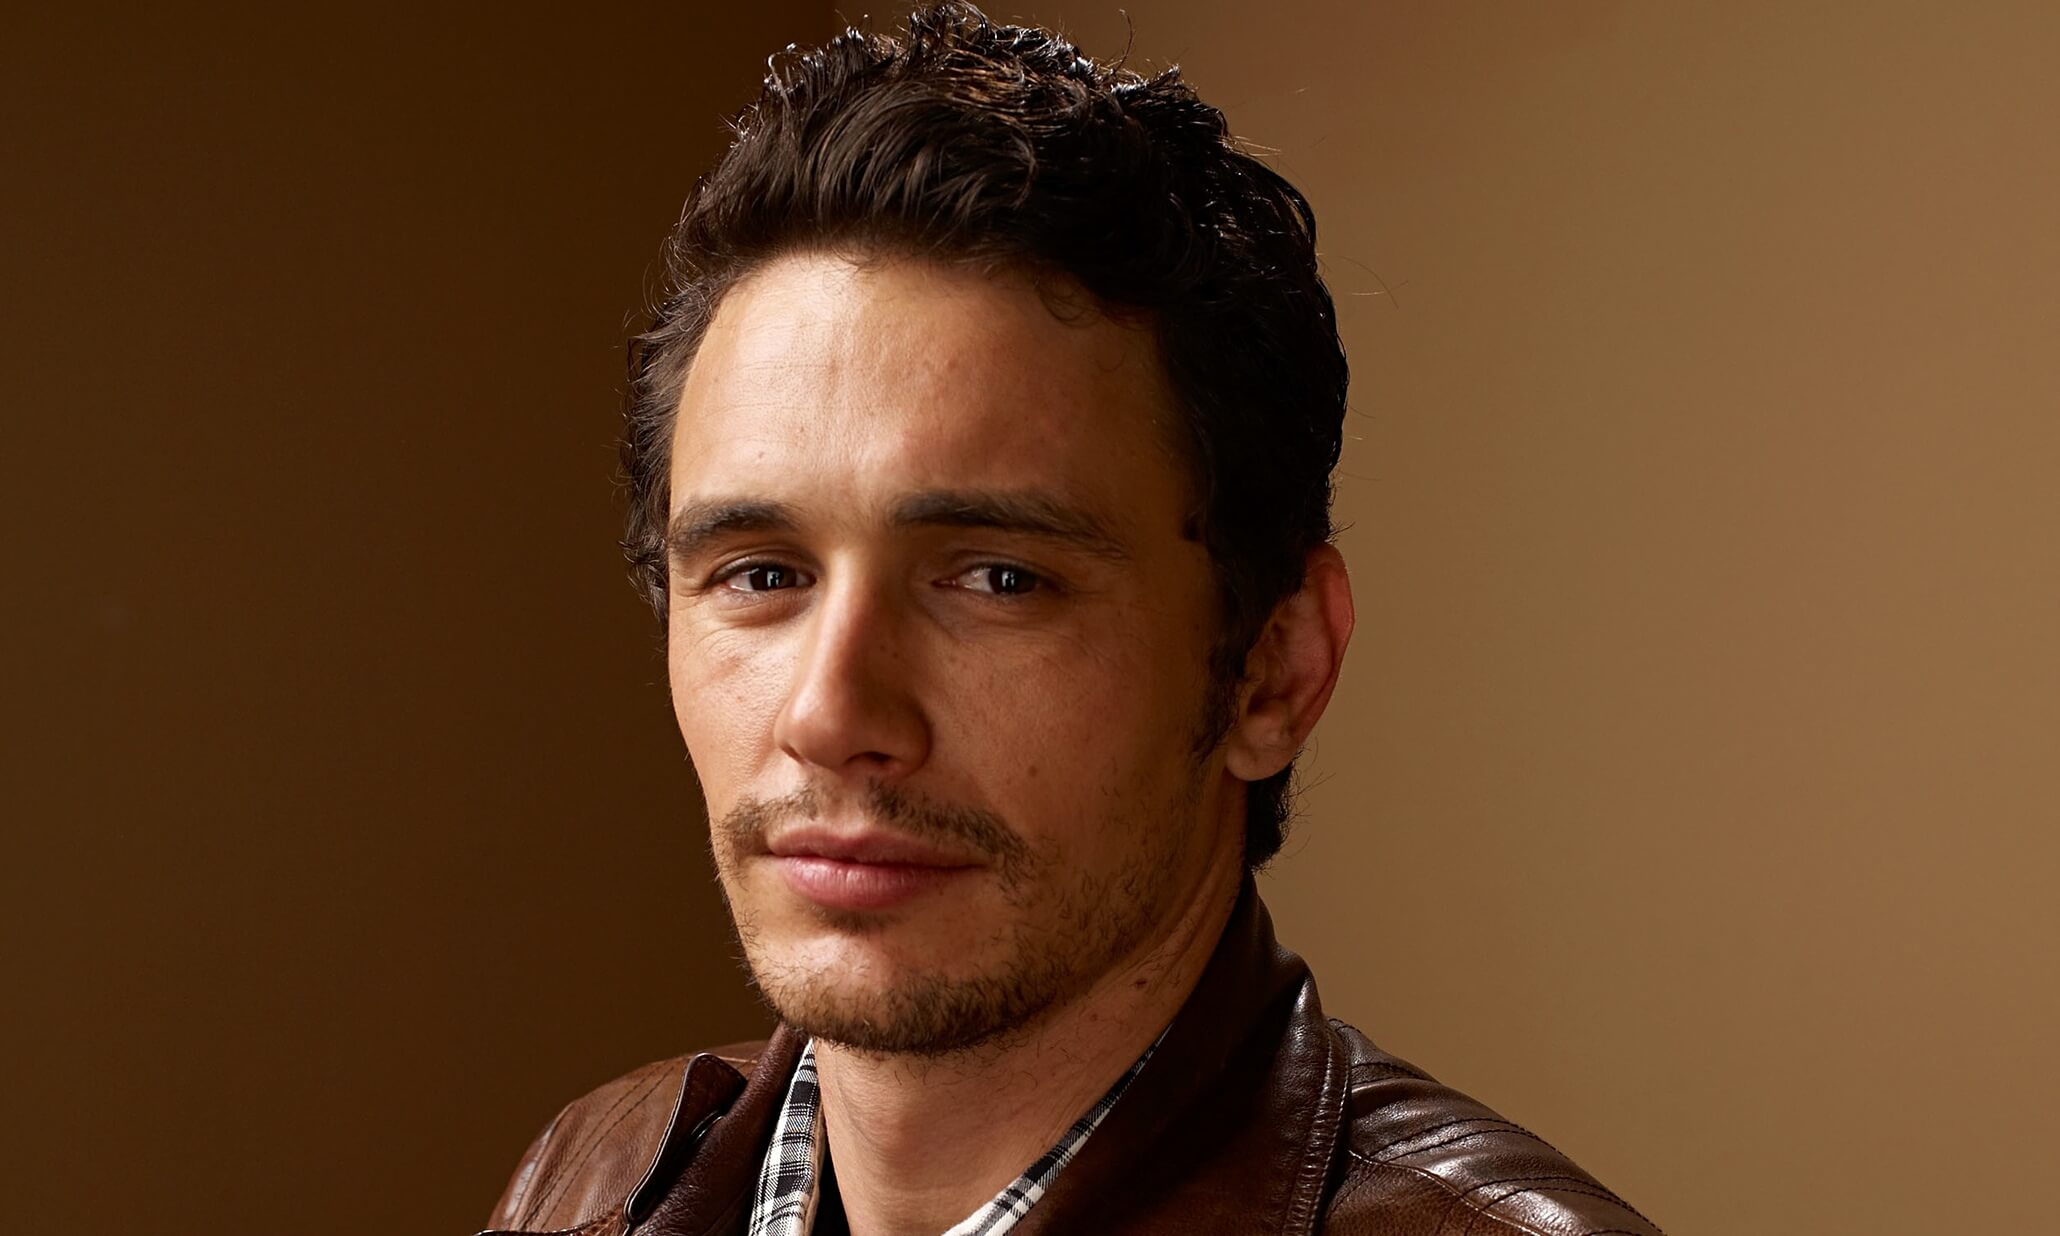 James_Franco_gay